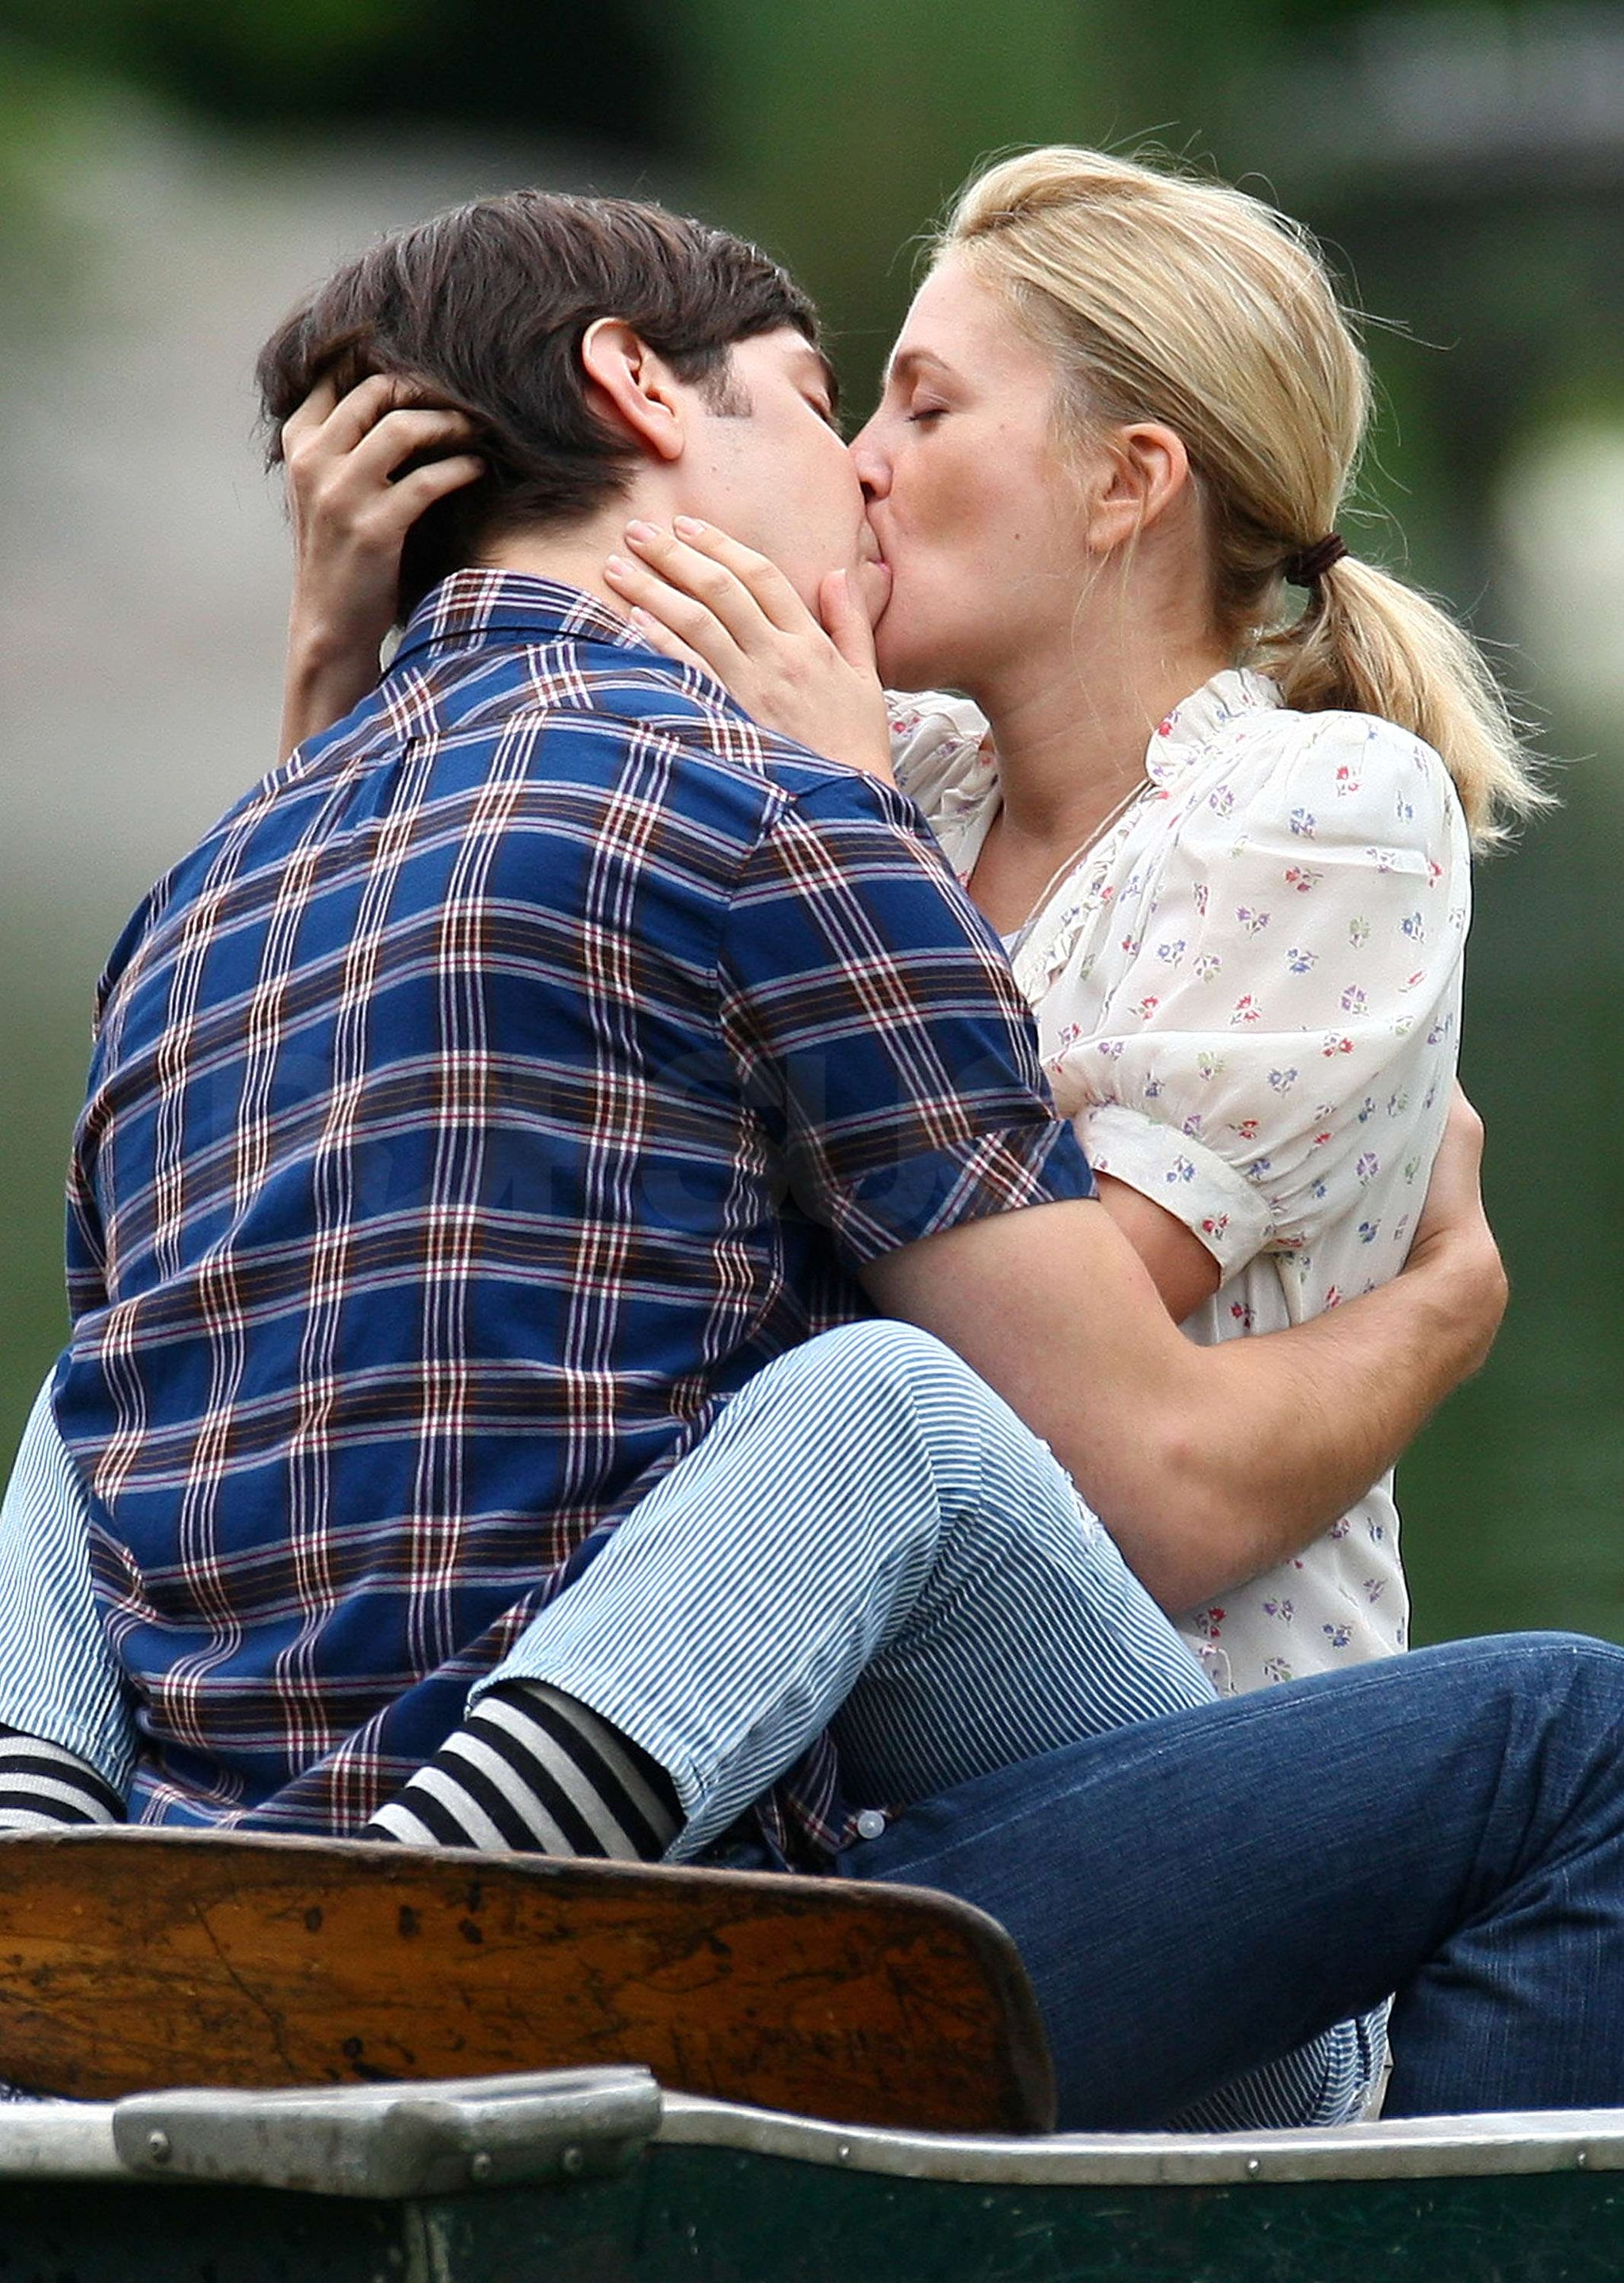 Photos Of Drew Barrymore And Justin Long Making Out On The